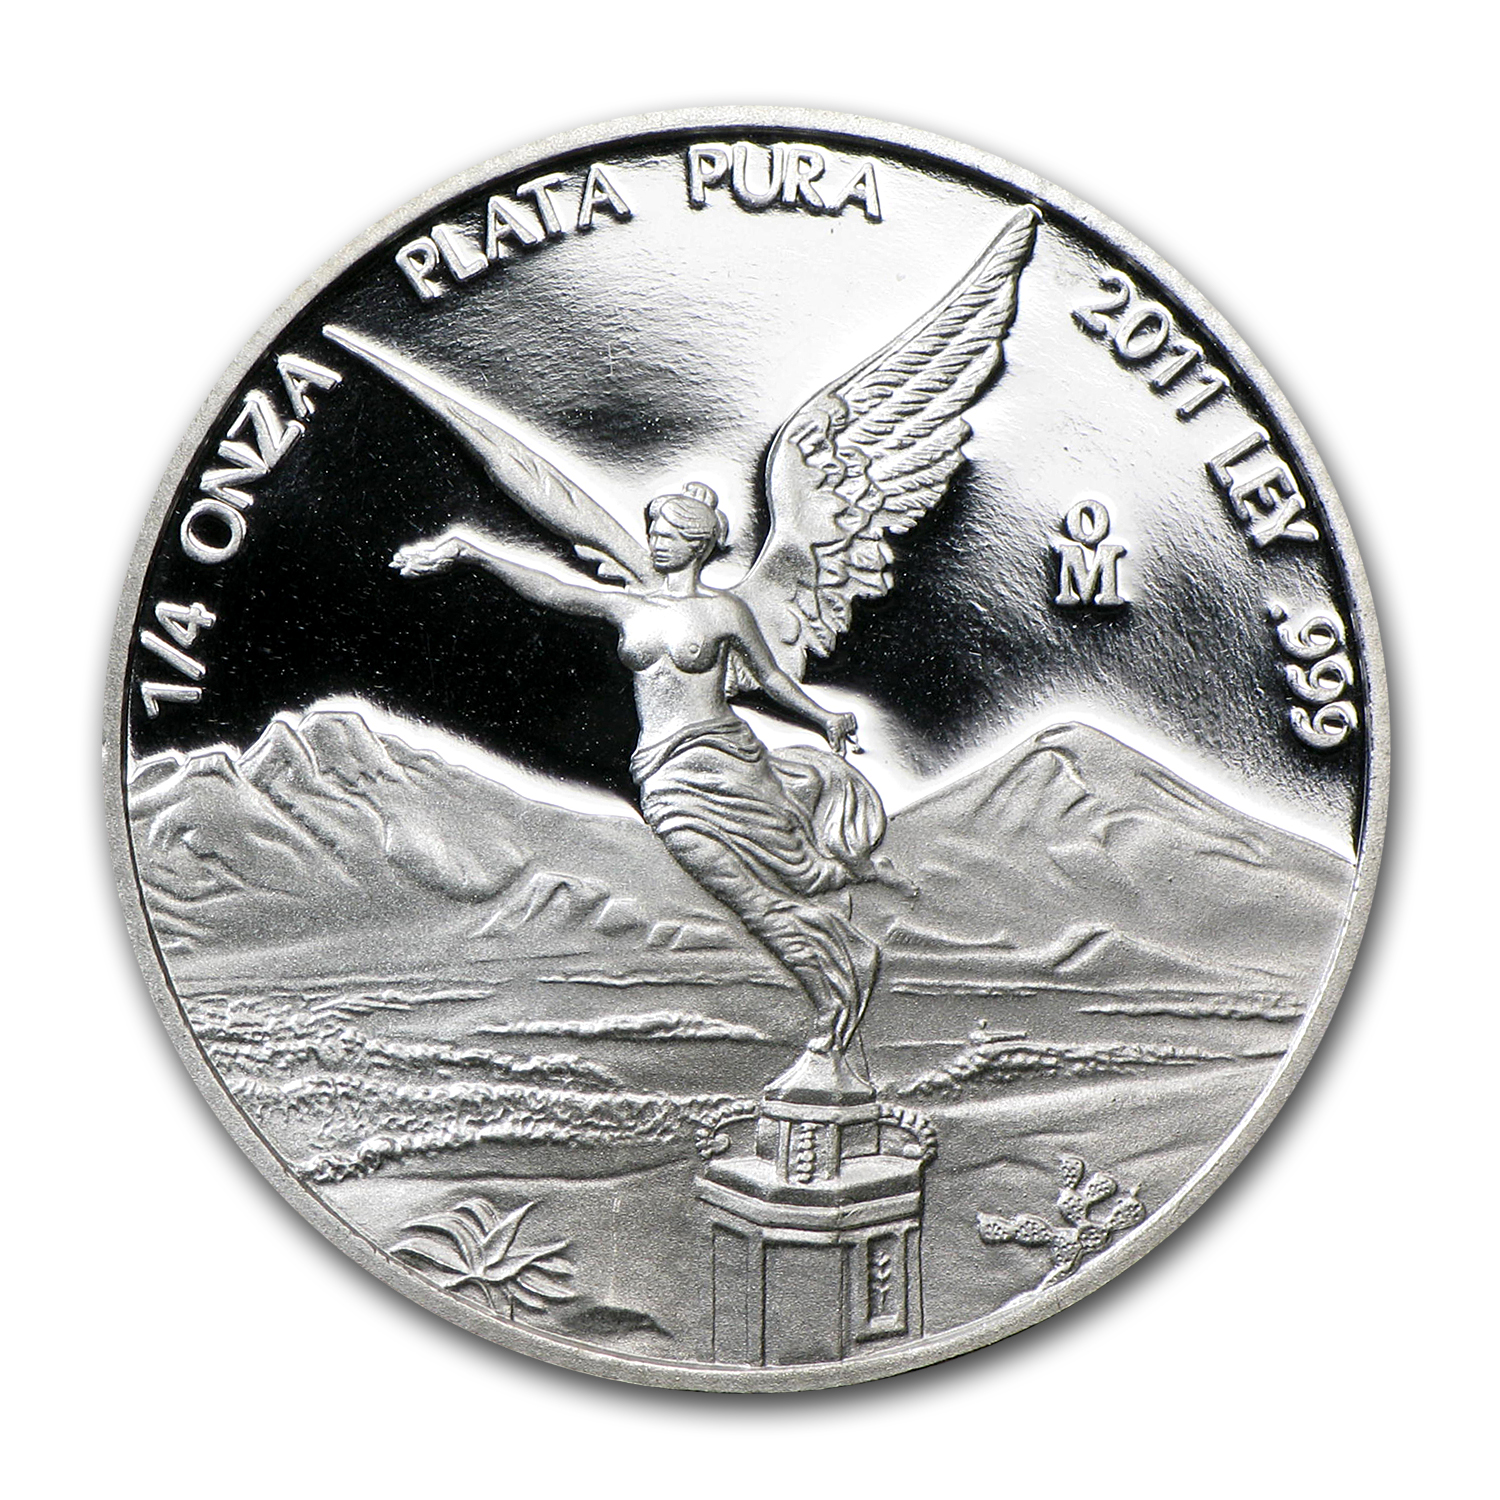 2011 Mexico 1/4 oz Silver Libertad Proof (In Capsule)